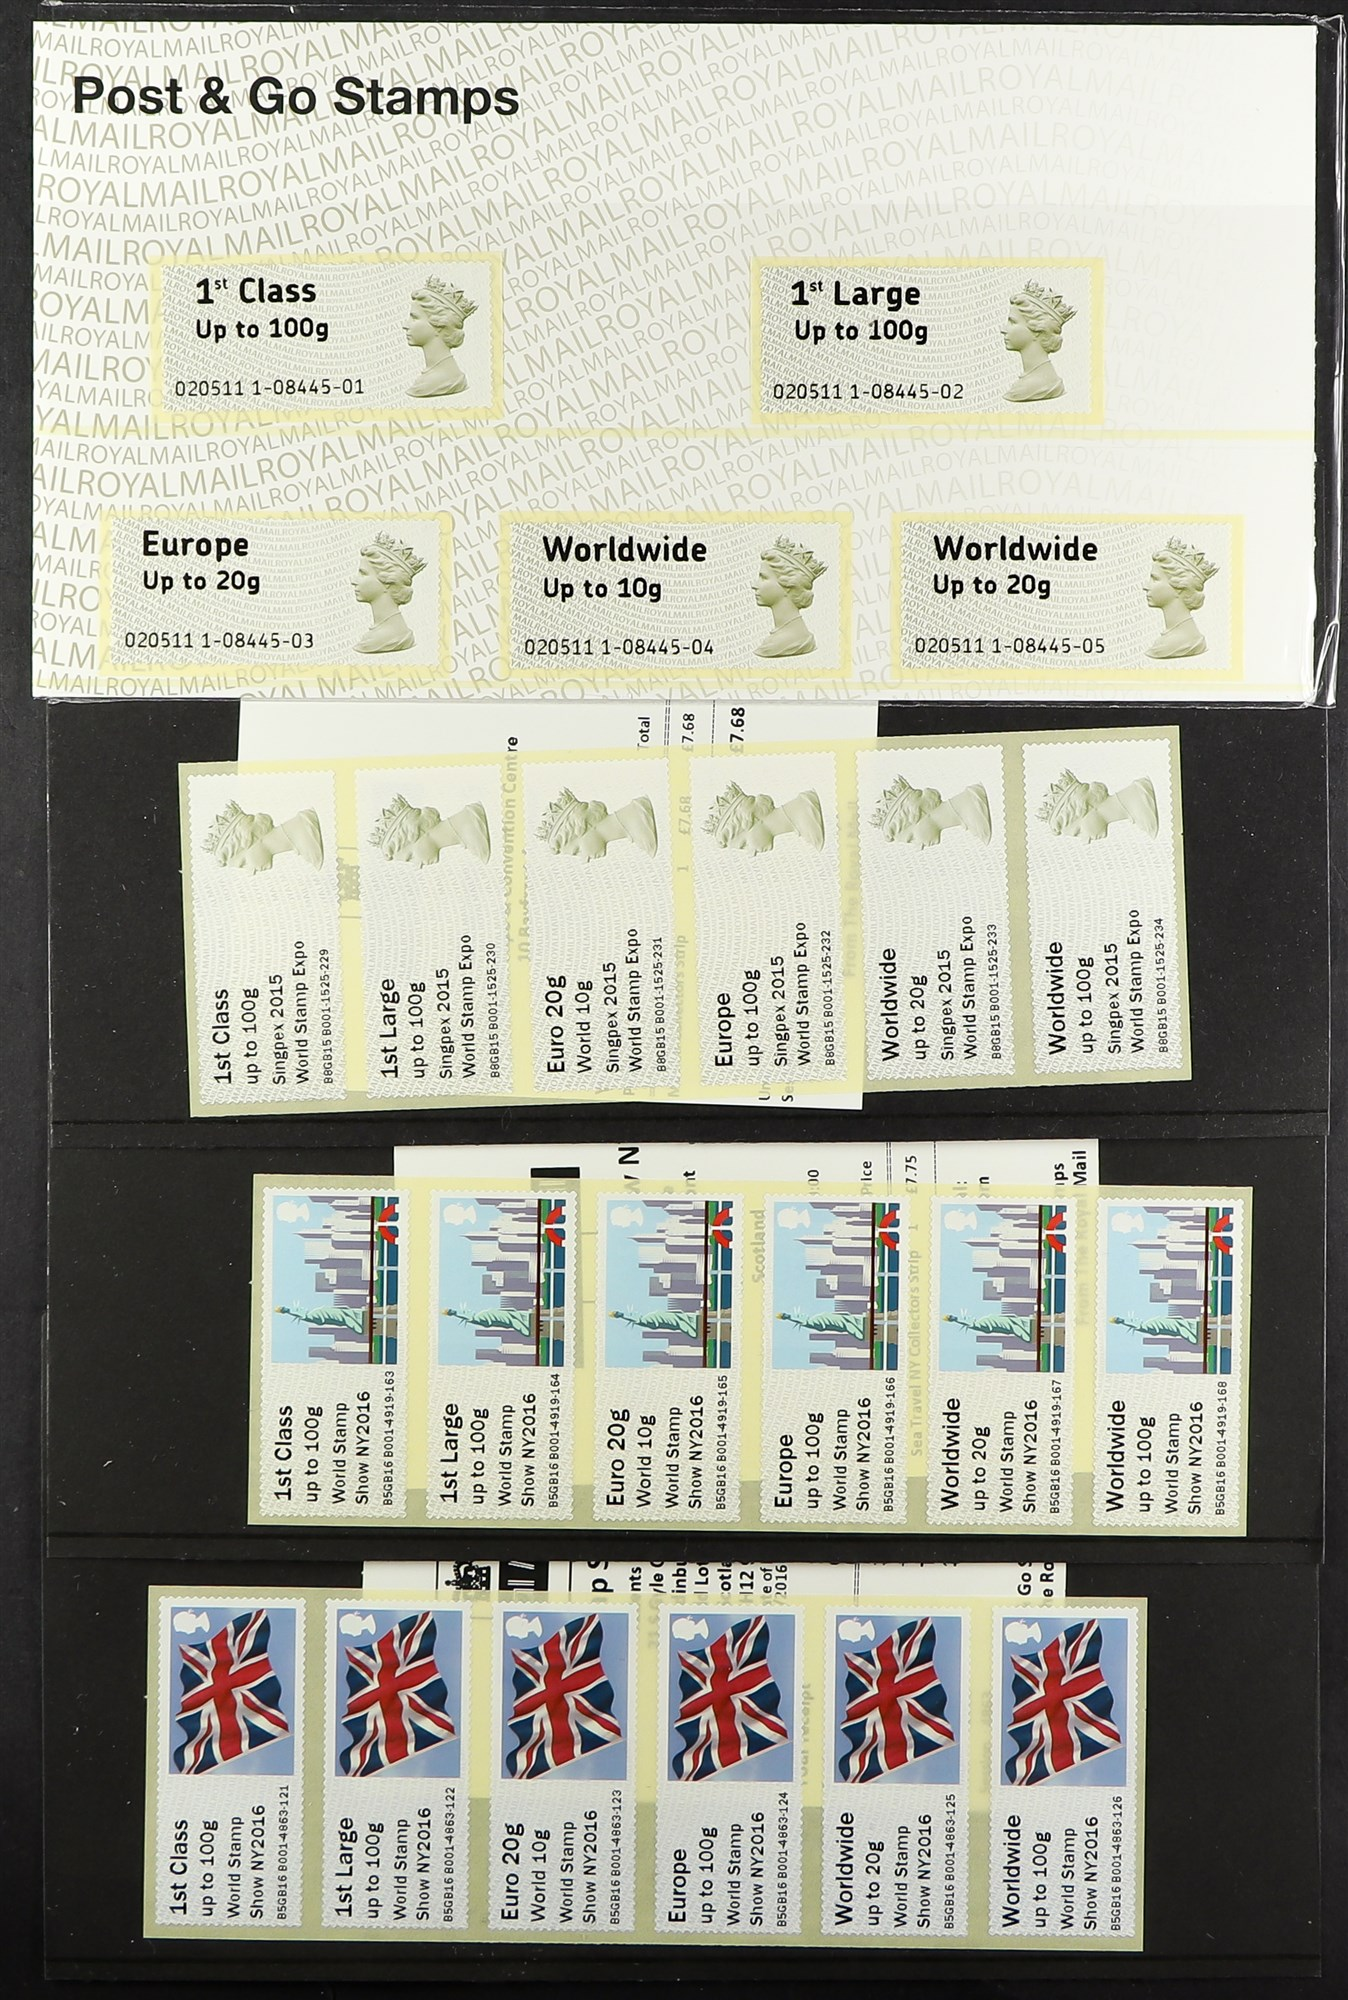 GB.ELIZABETH II POST & GO PRESENTATION PACK AND FDC COLLECTION. The packs begin with P&G 1 and end